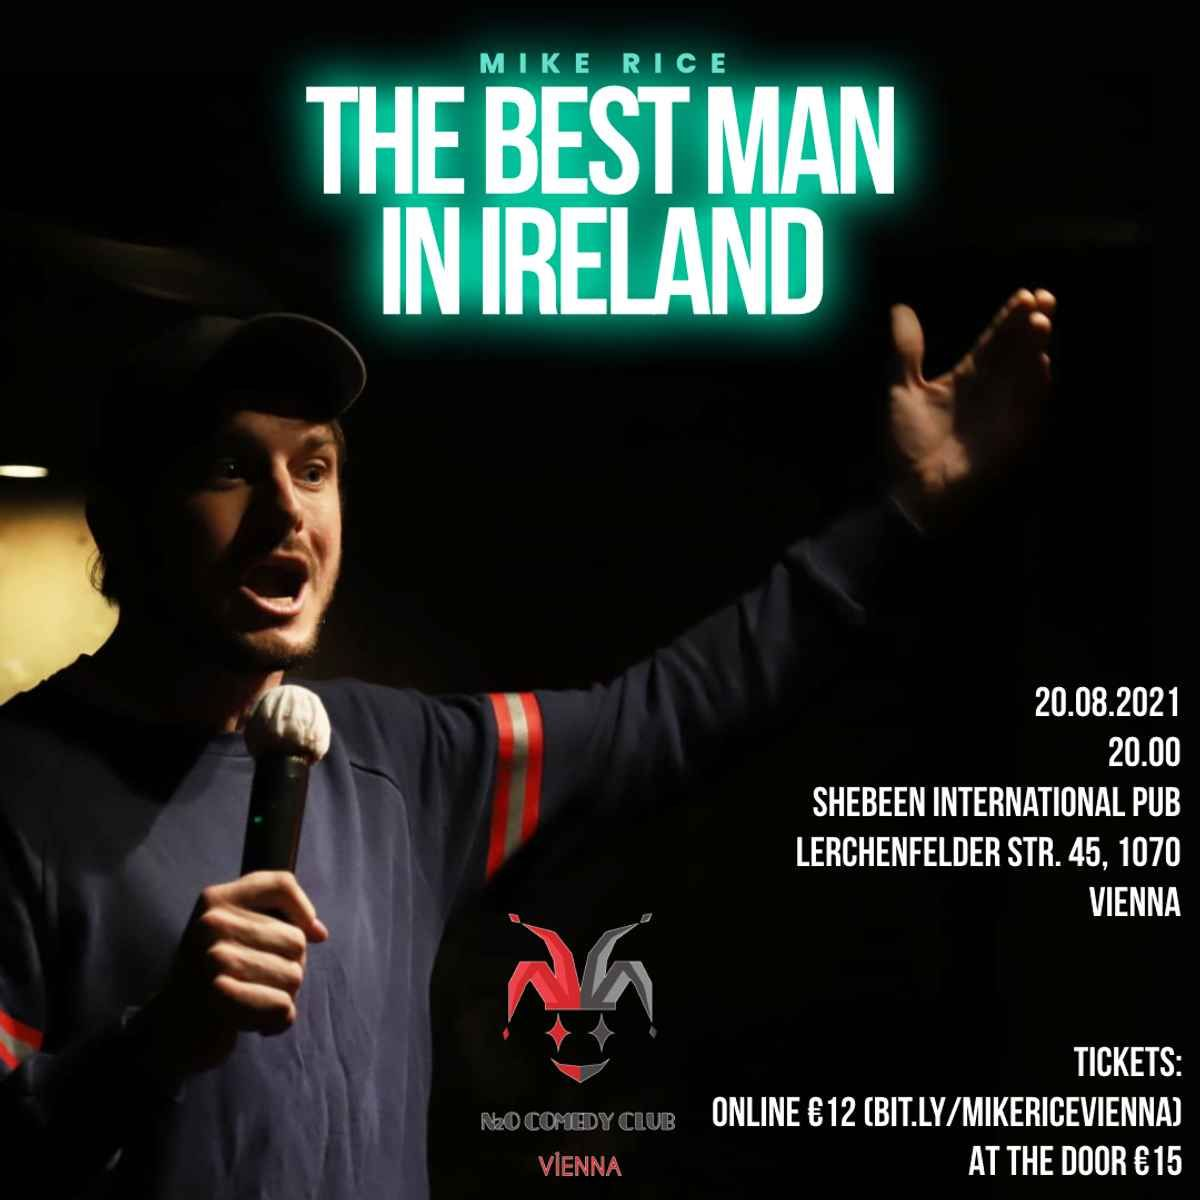 Mike Rice (IE) - English Stand-Up Comedy Night event impressions #2